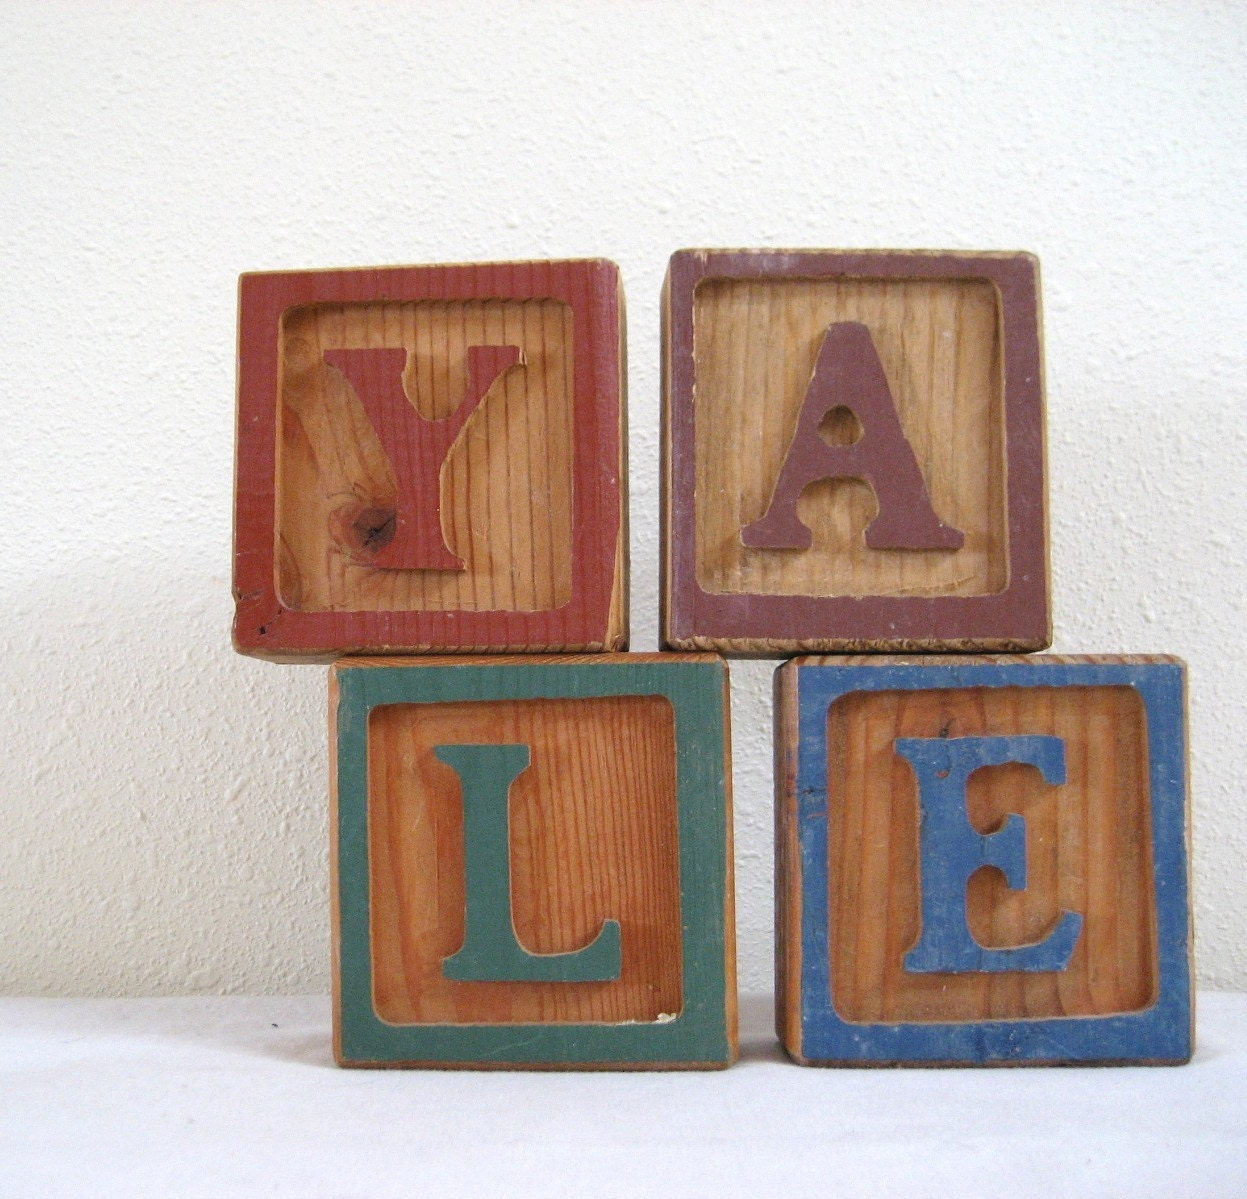 wood block letters wood block letters y a l e decorative wooden carved alphabet 25665 | il fullxfull.141530877